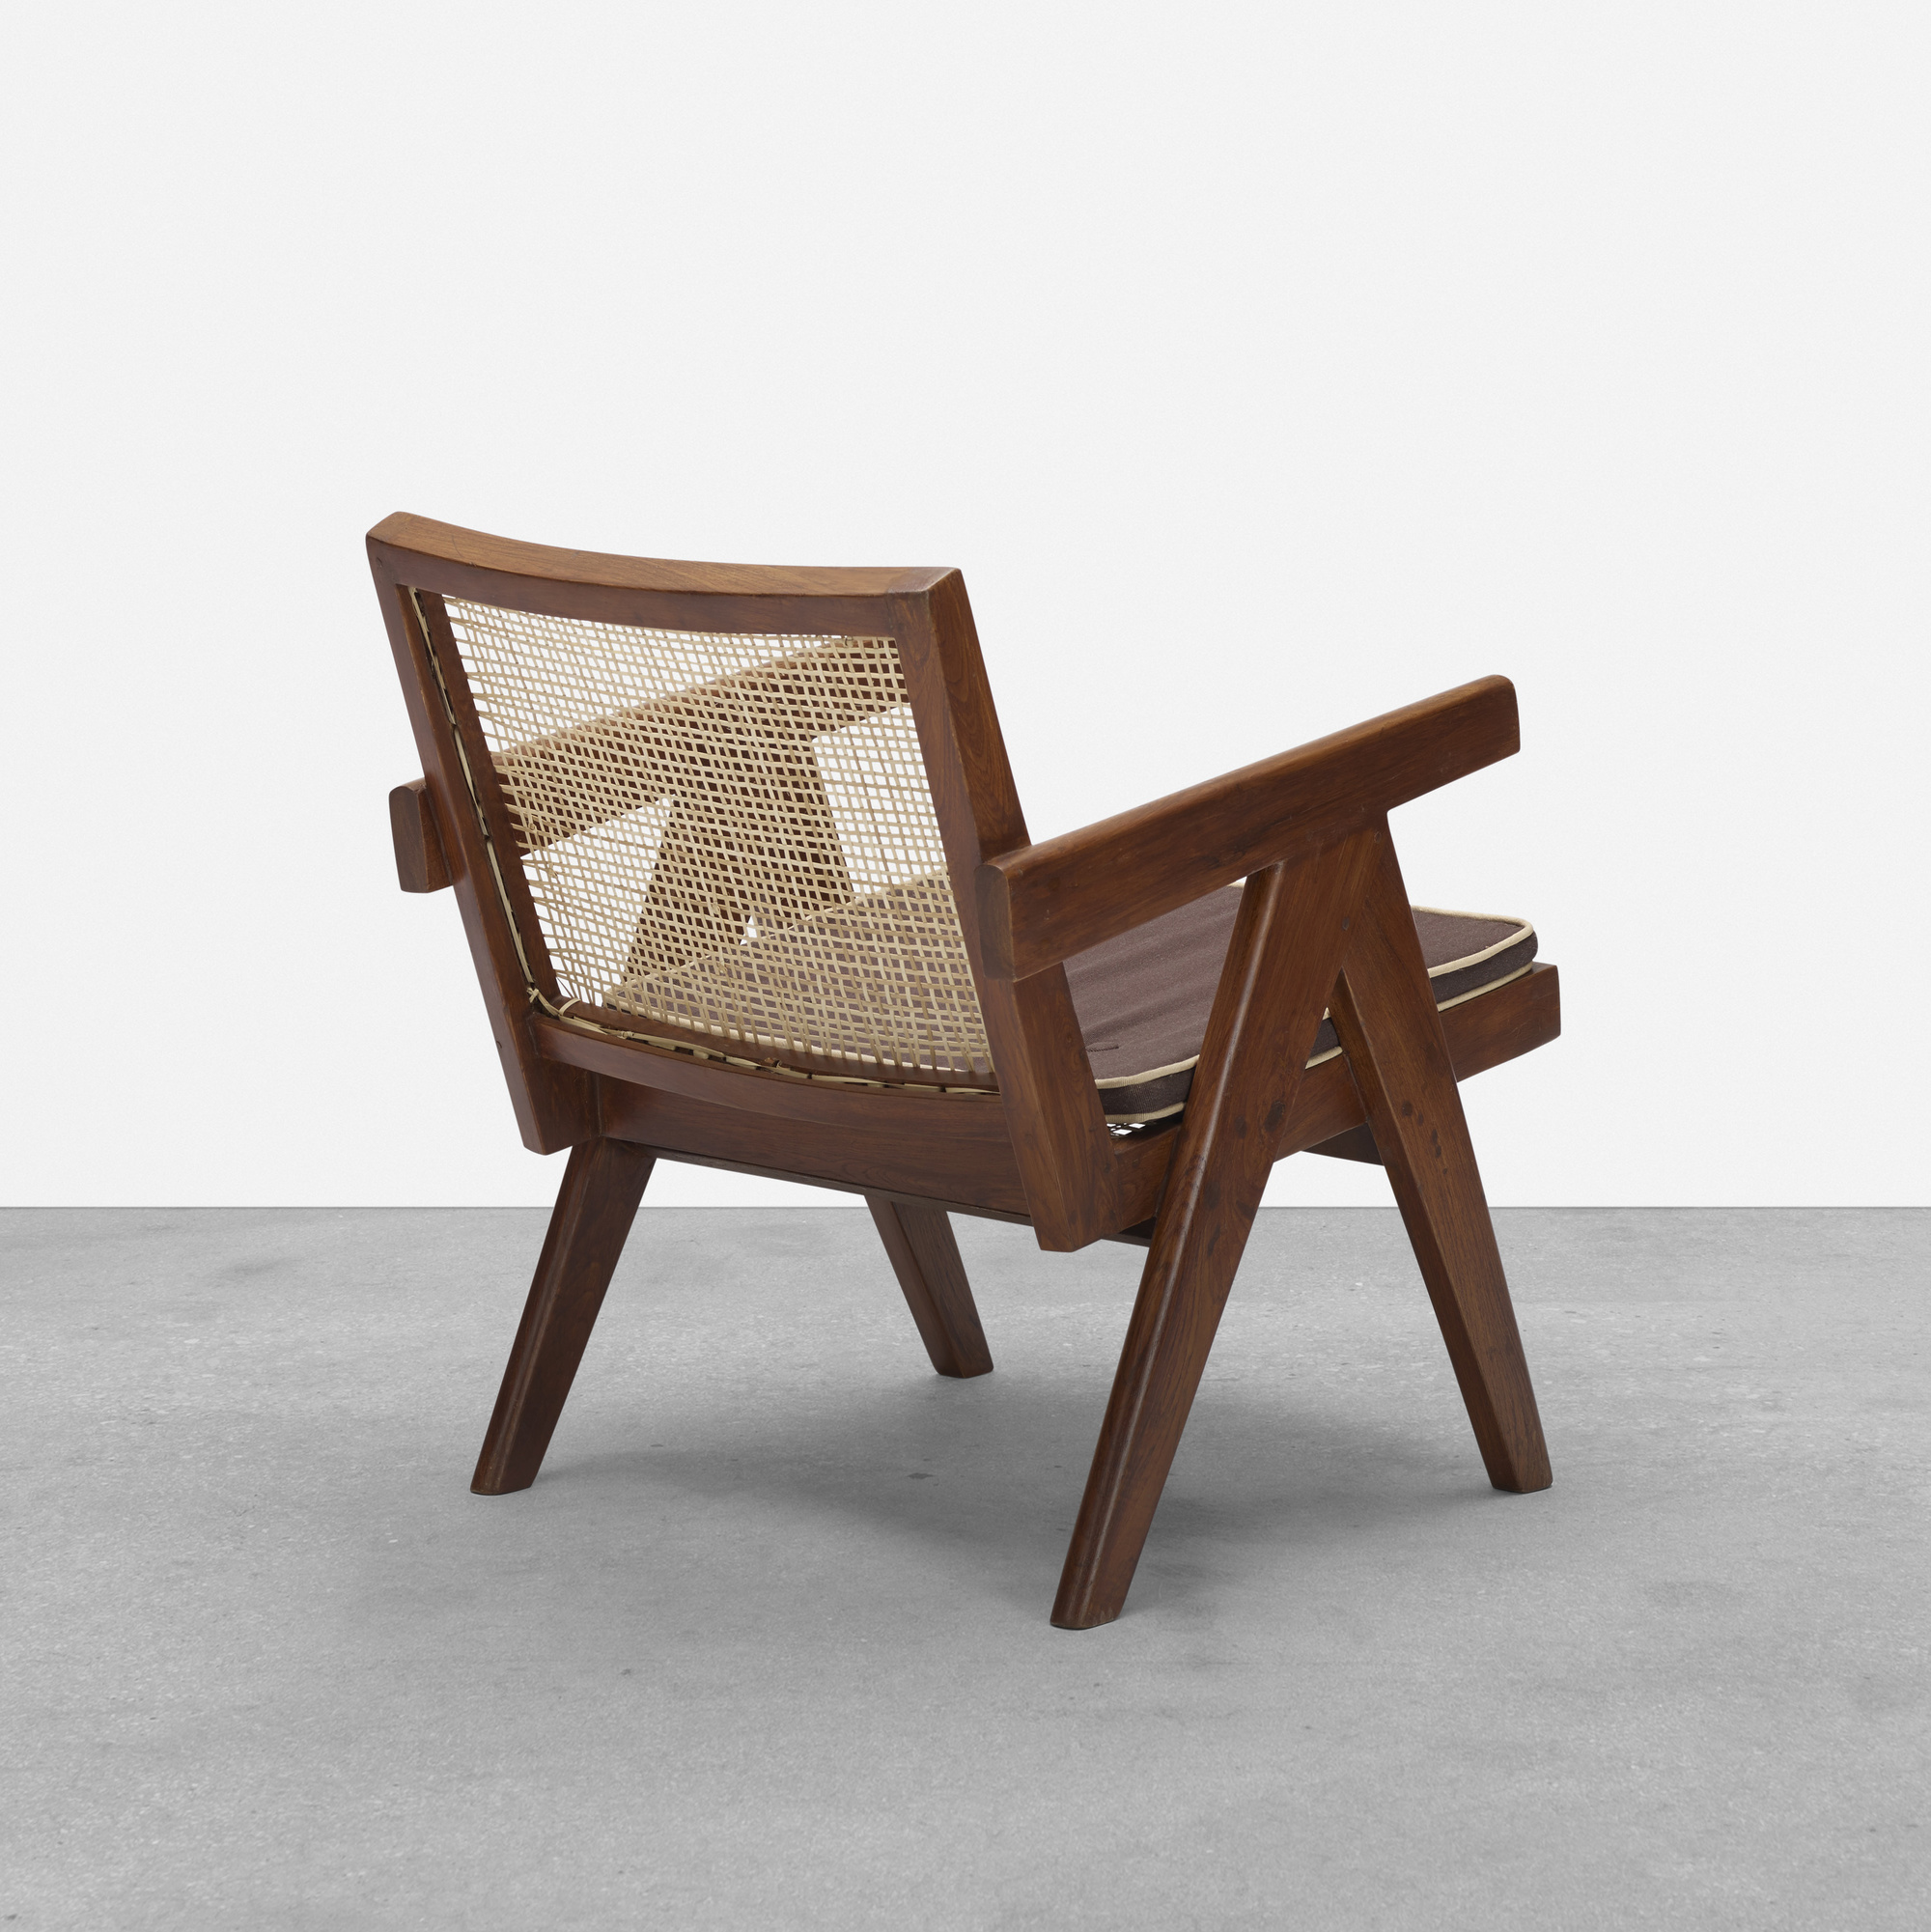 103: Pierre Jeanneret / Easy armchair from Chandigarh (1 of 4)